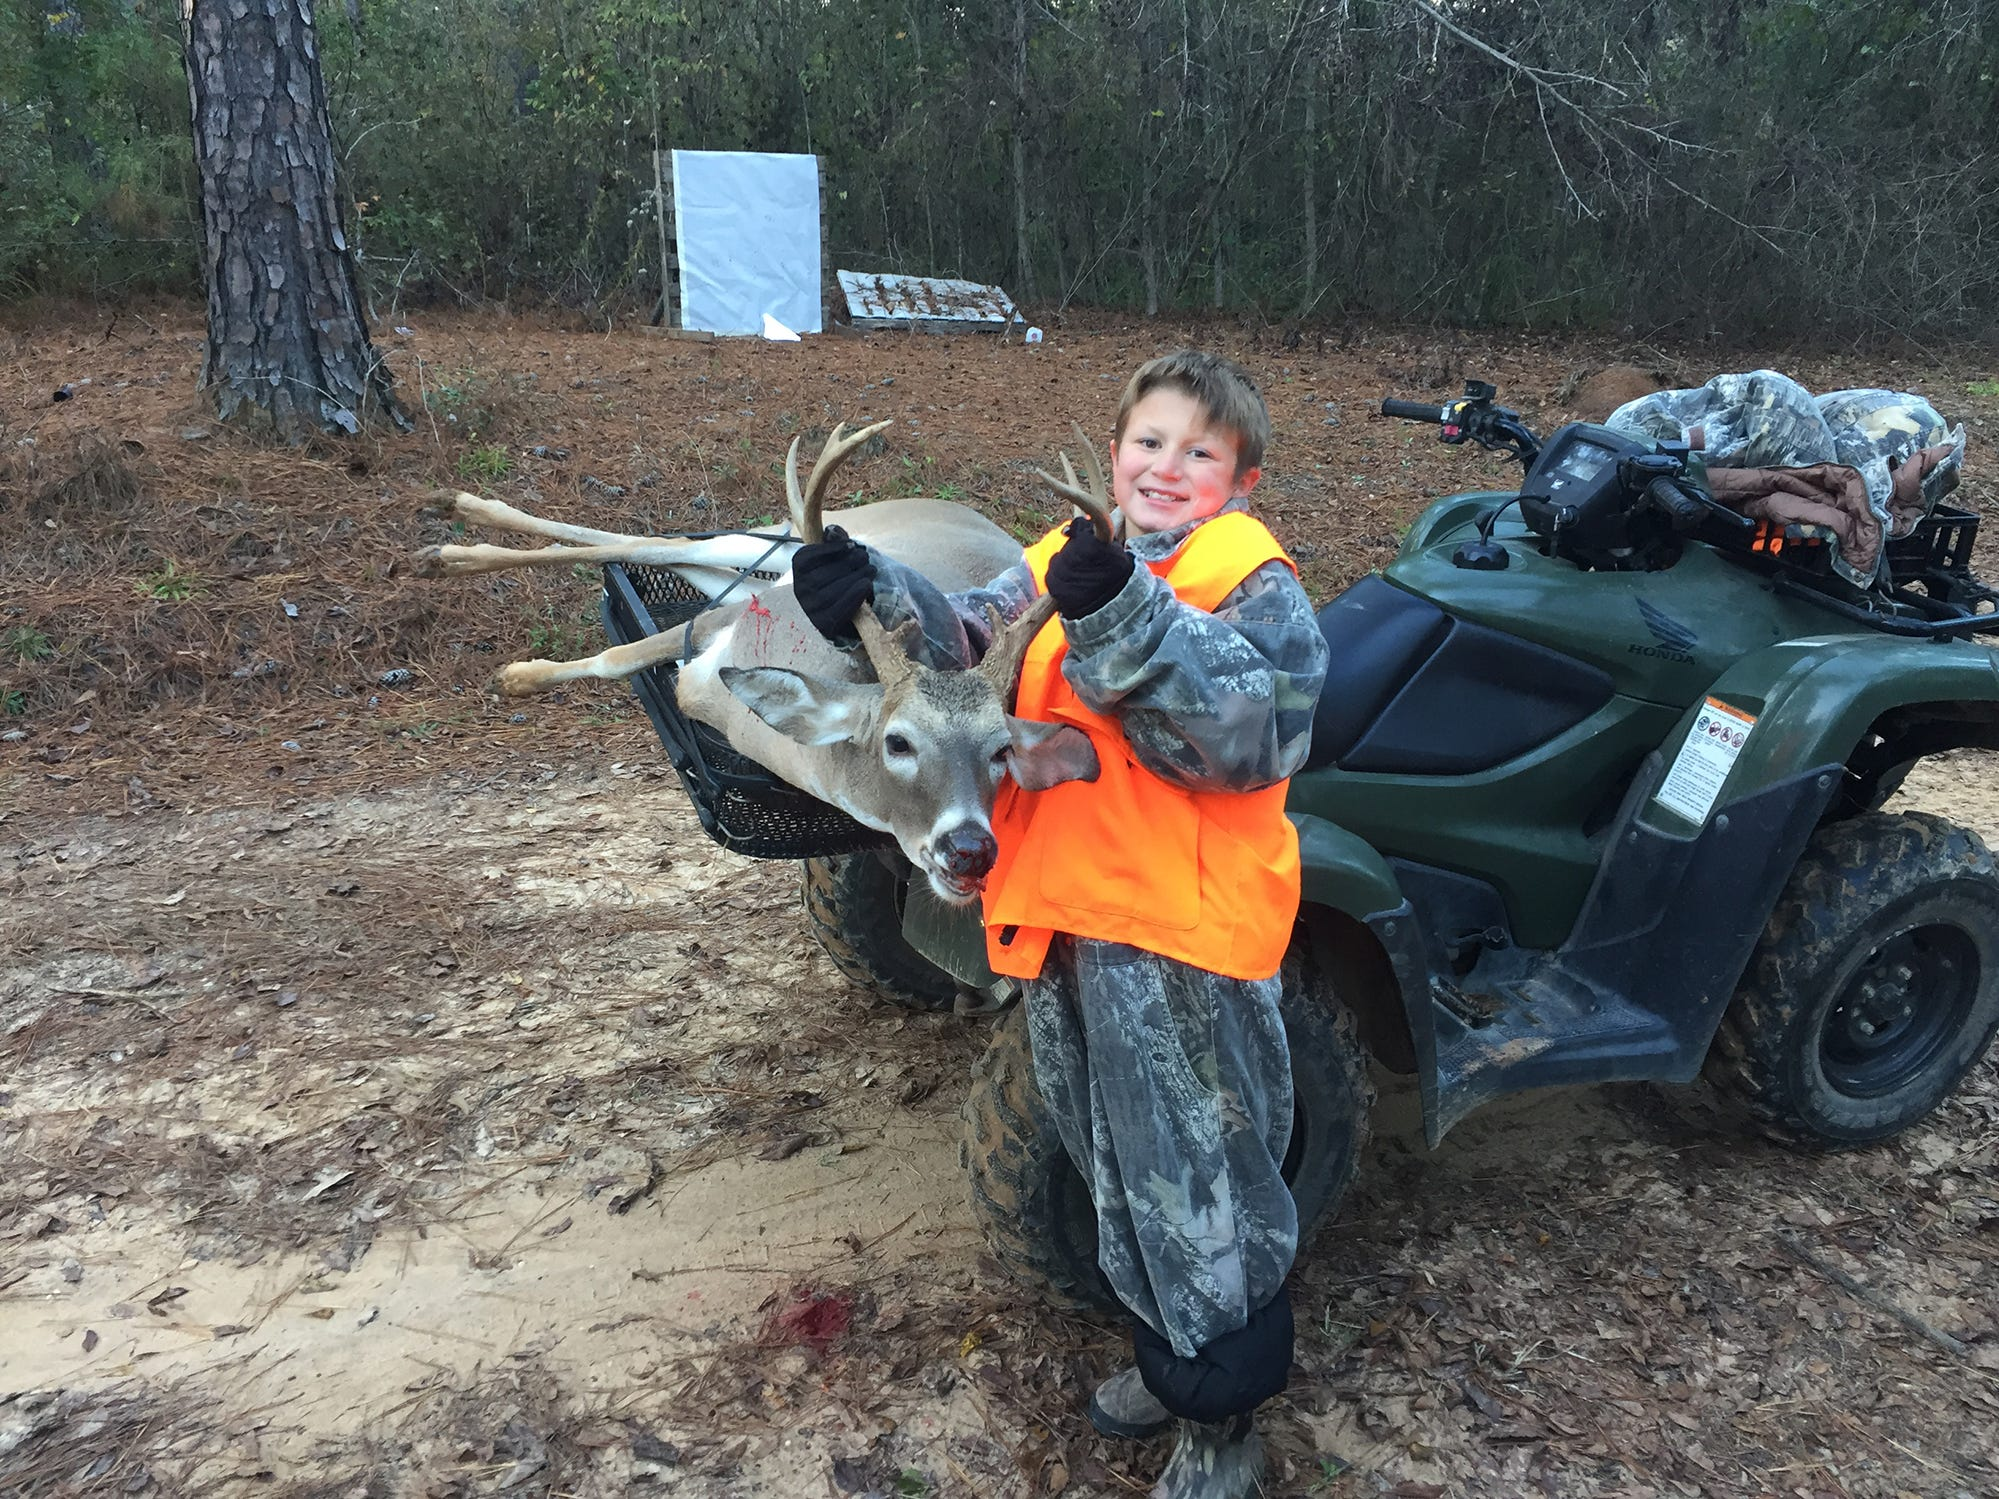 Conner Brady, 10, of Ellisville, harvested a 9-point while hunting with his grandfather. It was his first buck.